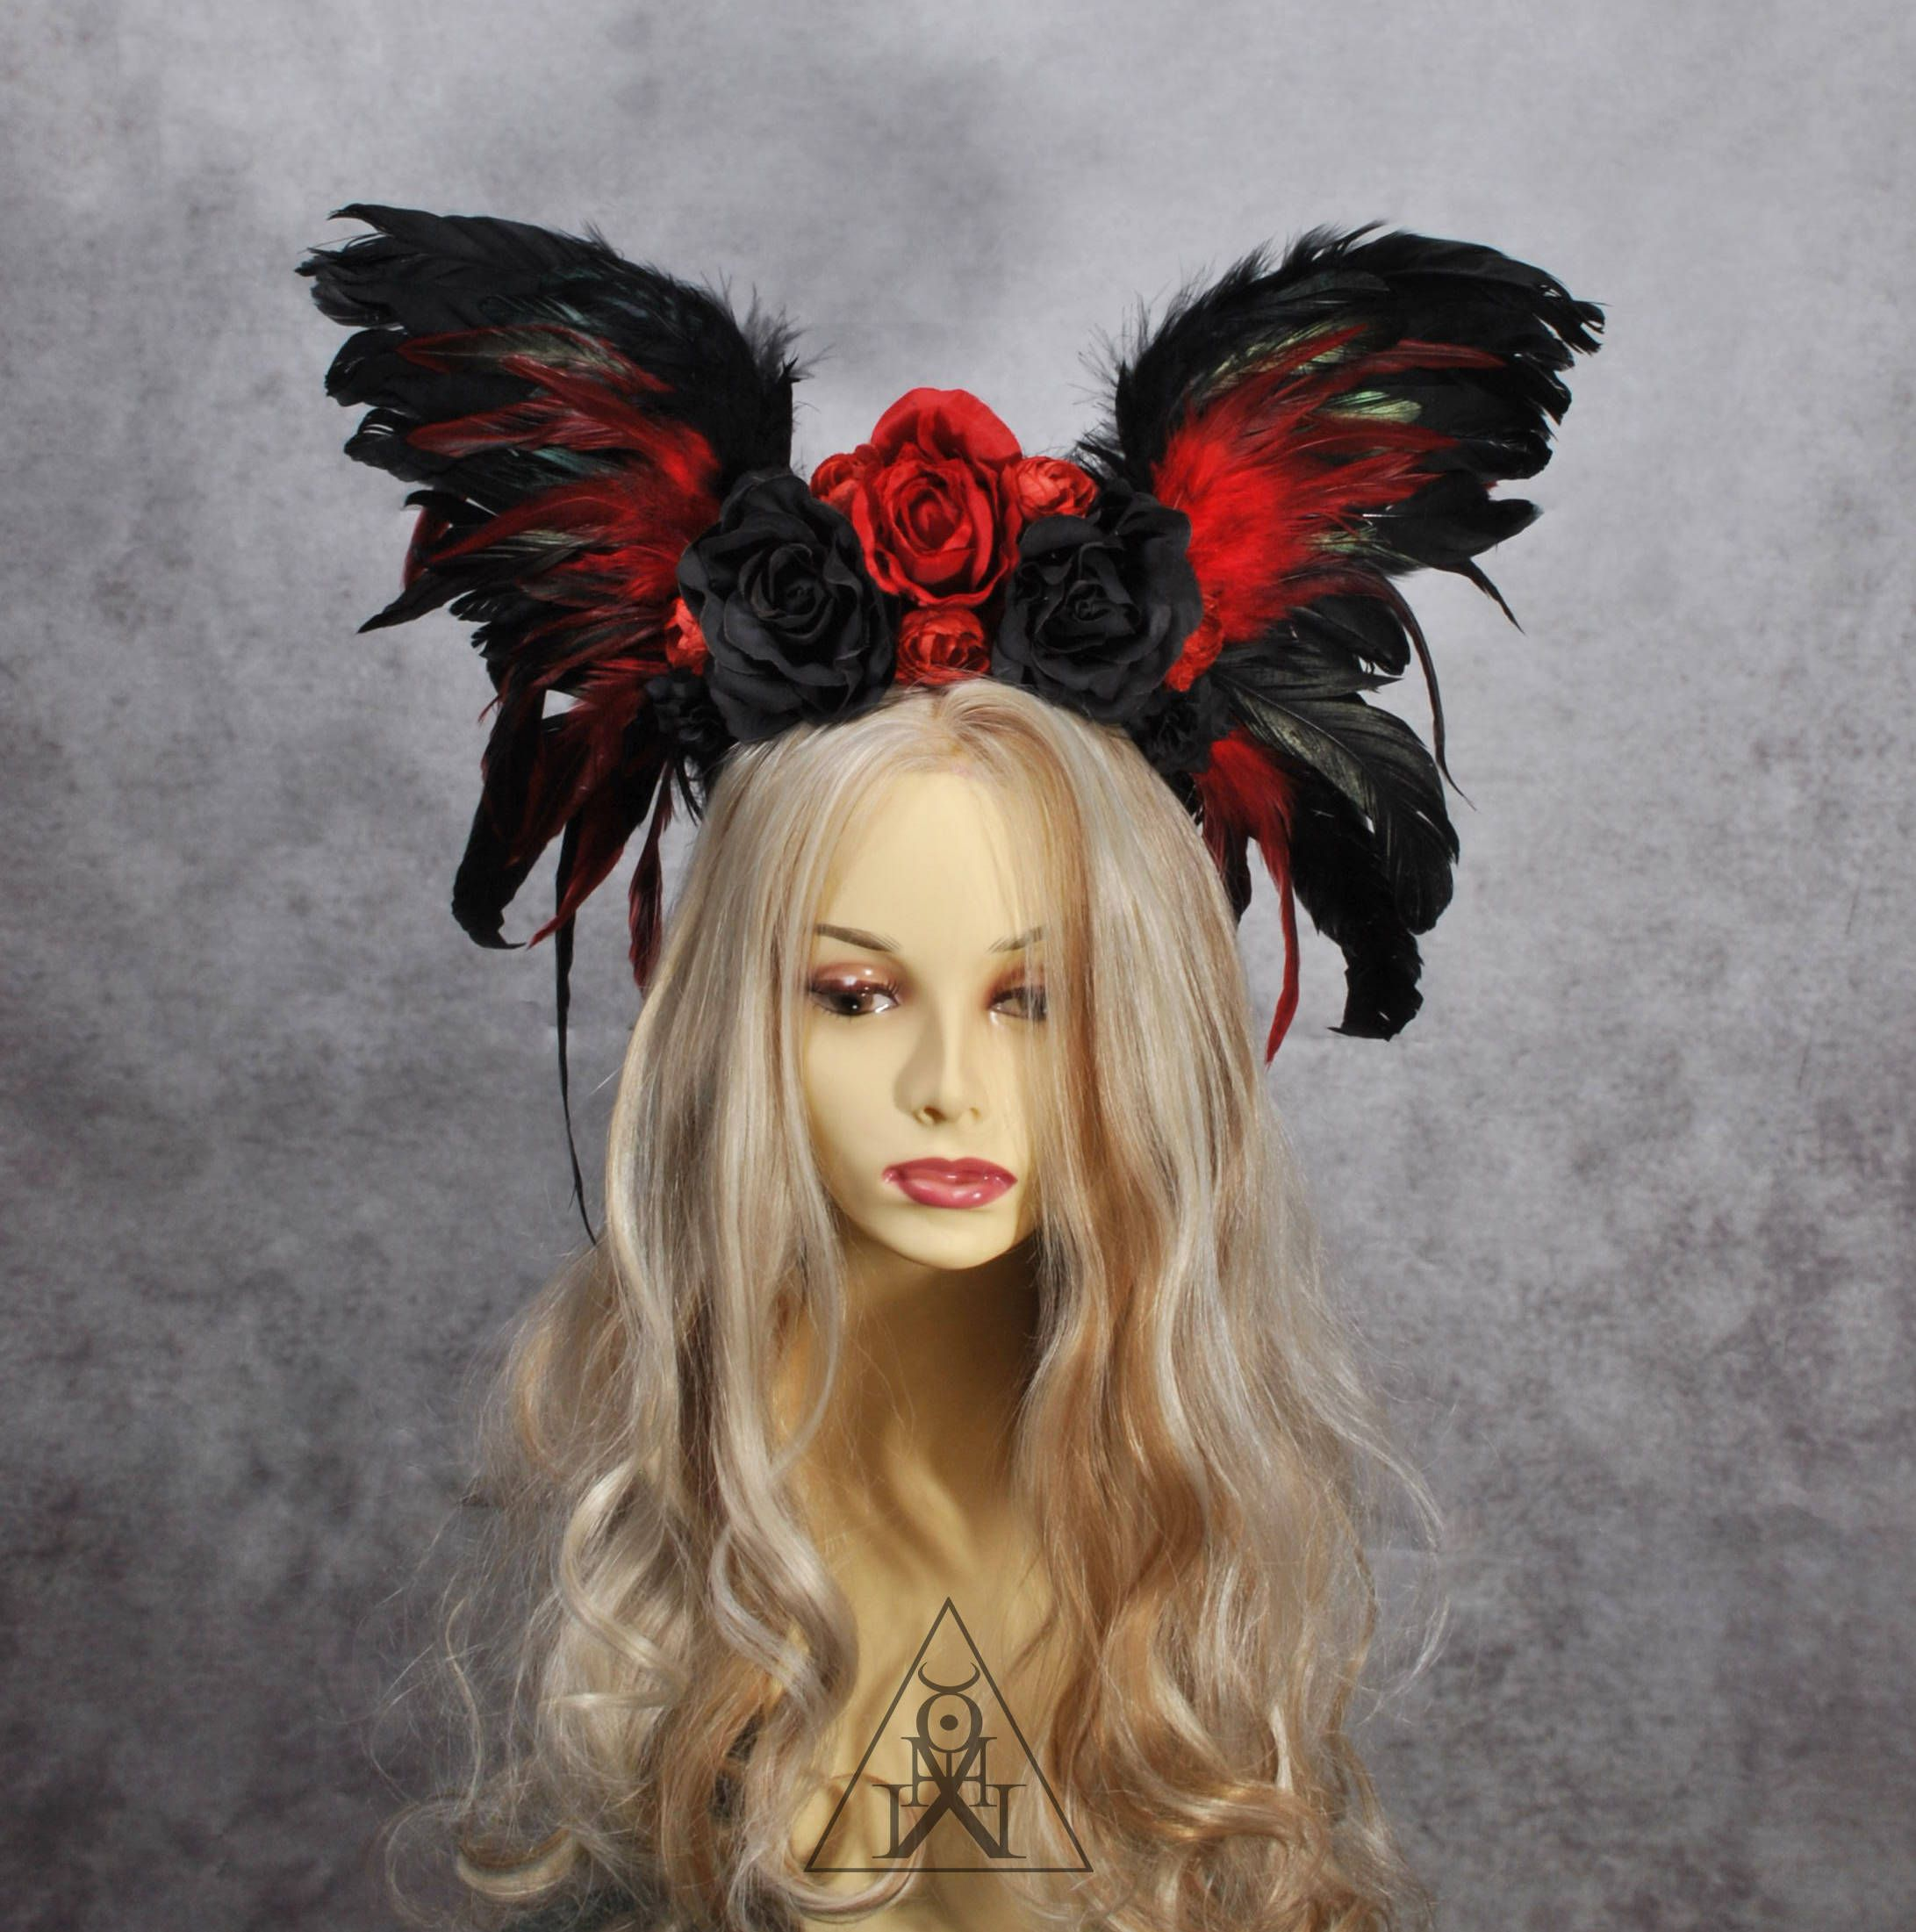 3cafbcba7 MyWitchery | D&d | Feather headpiece, Gothic, Headpiece